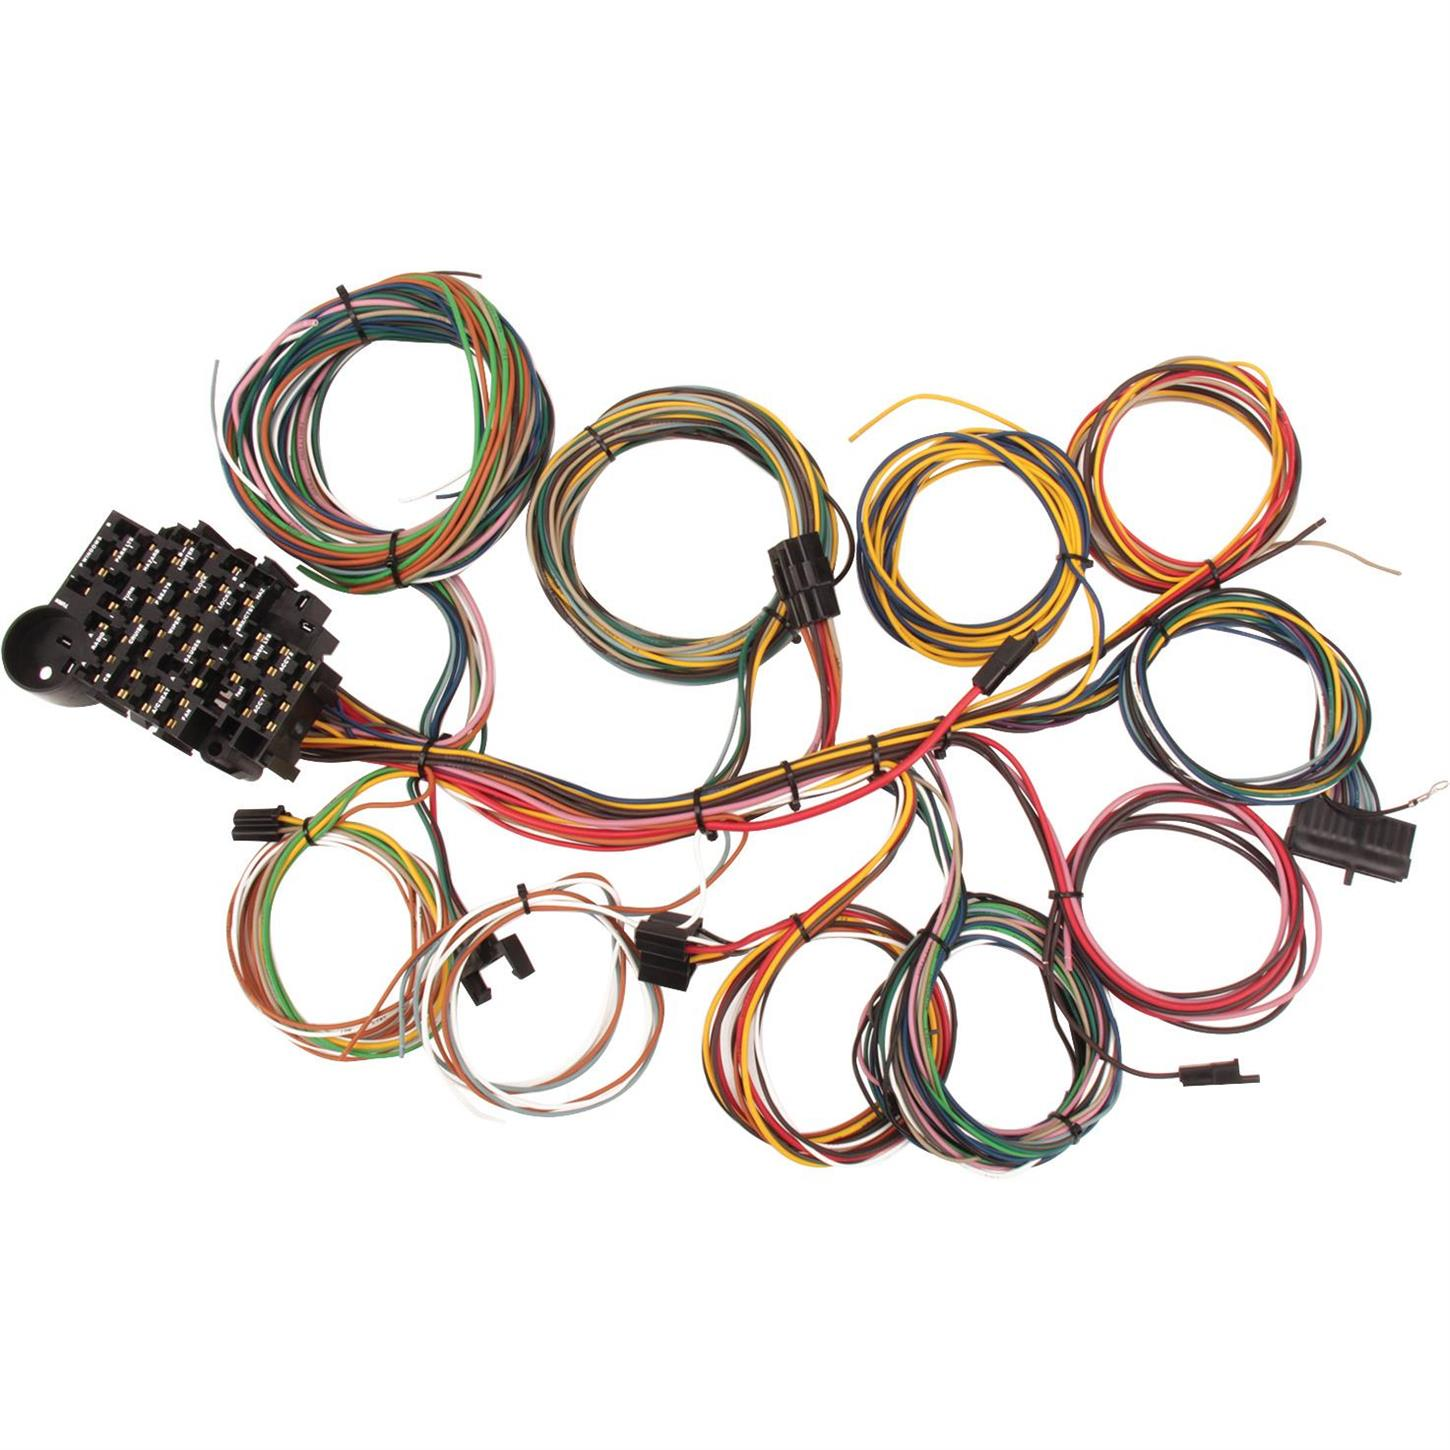 91064022_L1450_4a5a9e43 cdd2 4b2c 9c68 457f296054bd selecting a wiring harness for your street rod  at bakdesigns.co